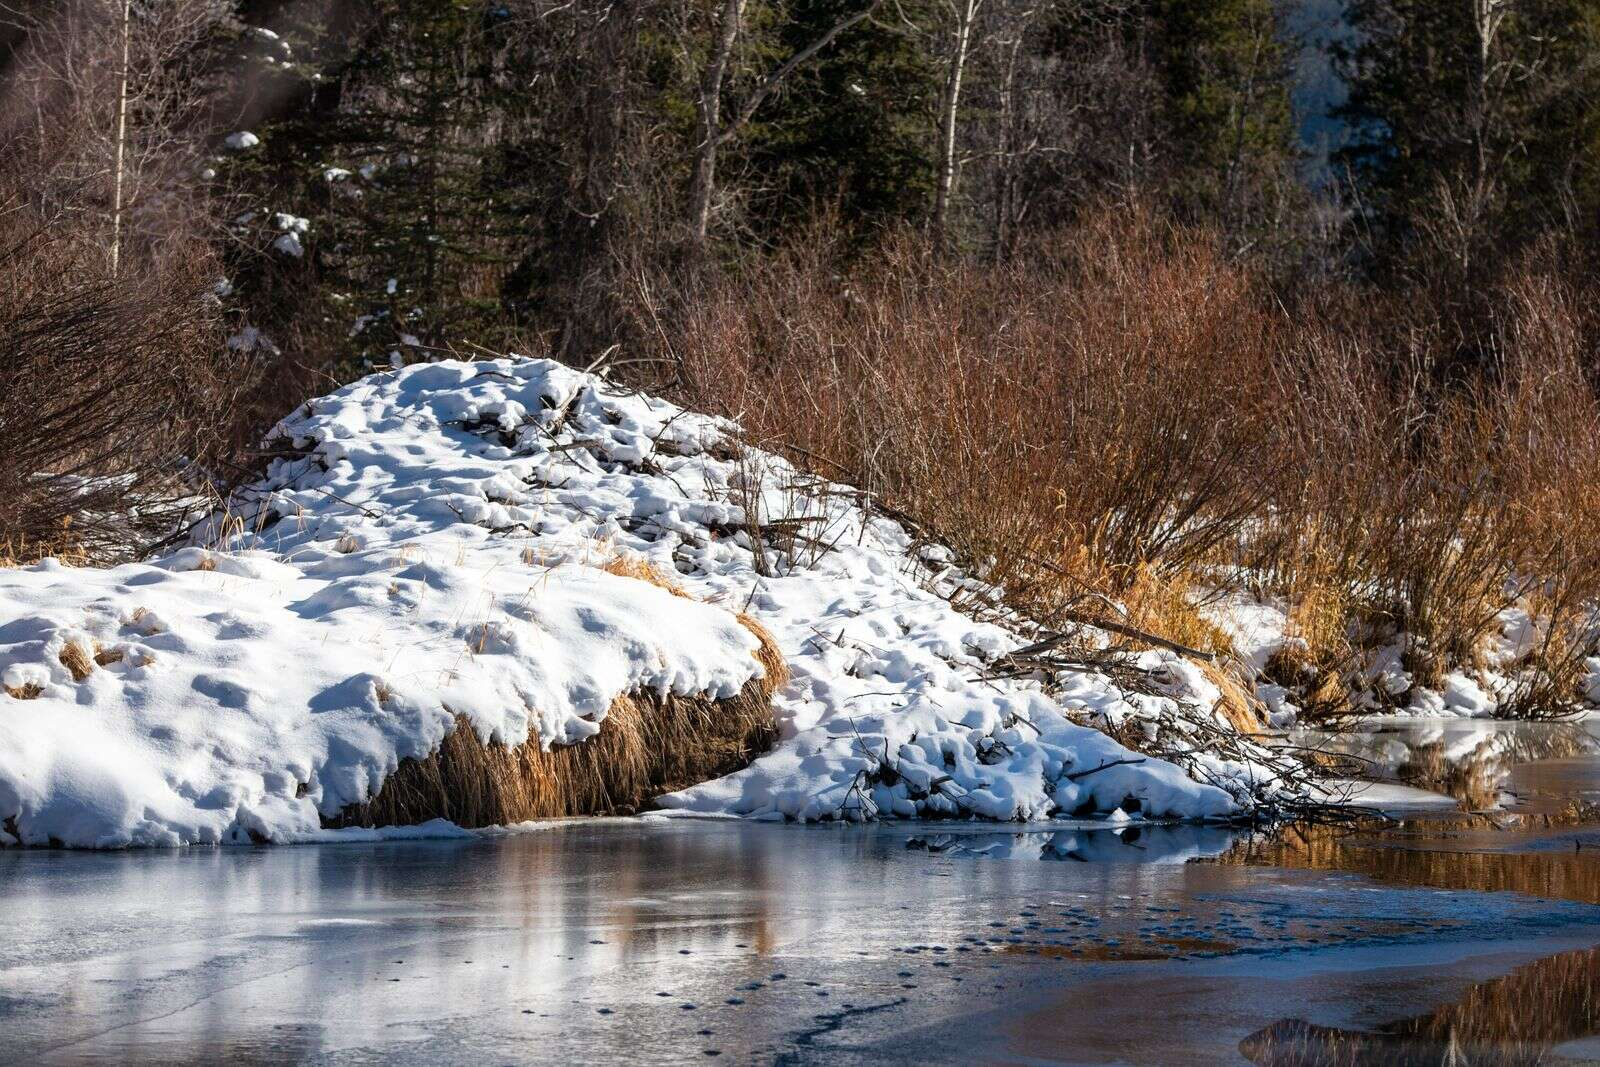 A beaver lodge protrudes into the Roaring Fork River in the Northstar Nature Preserve in Aspen on Friday, Dec. 4, 2020. A lodge houses a mated pair of beavers and their young. The young beavers live with their parents for two years. (Kelsey Brunner/The Aspen Times)